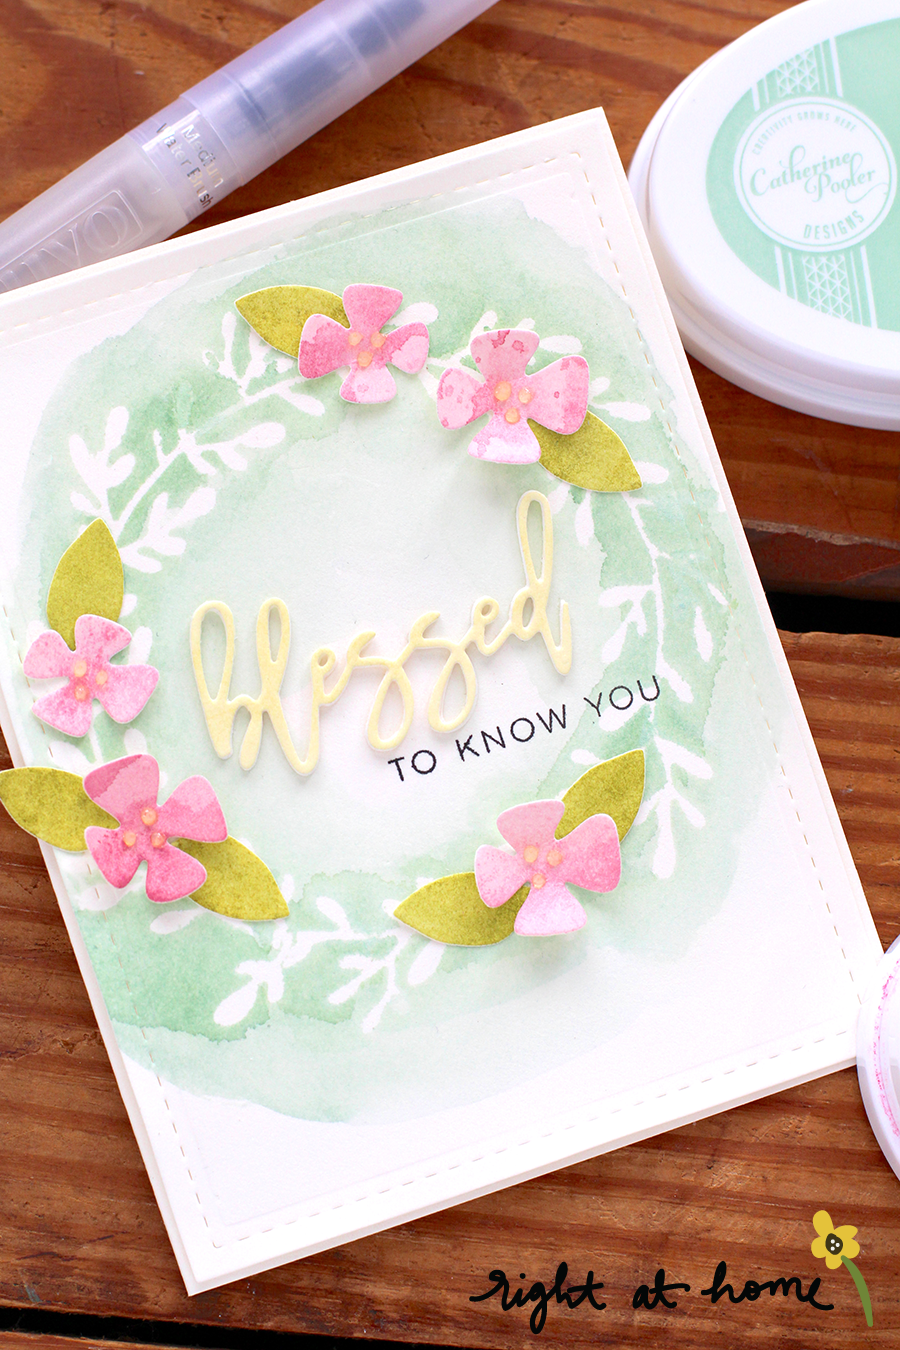 Blessed Wreath Stencil Watercolor Card // National Craft Month with Right at Home + Ellen Hutson LLC - rightathomeshop.com/blog